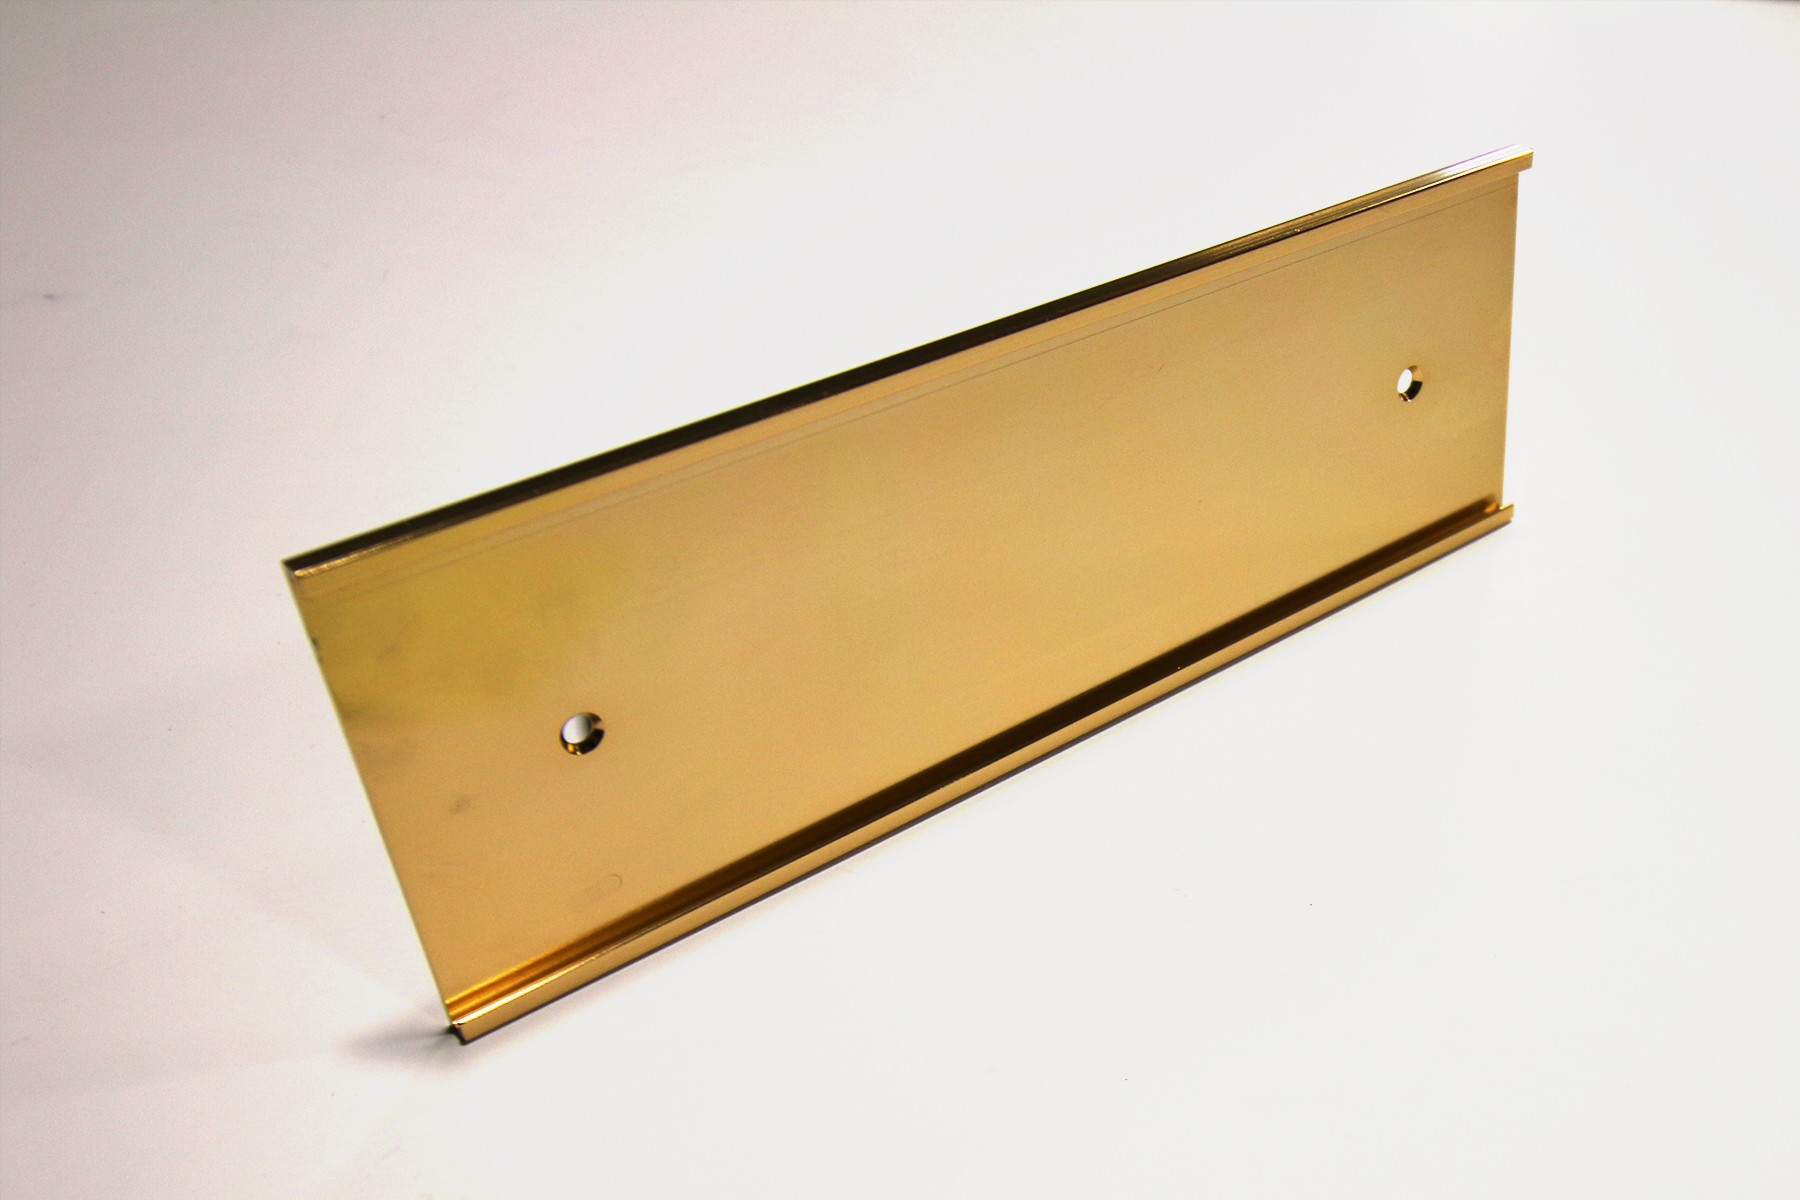 2-1/2 x 24 Wall Holder, Gold